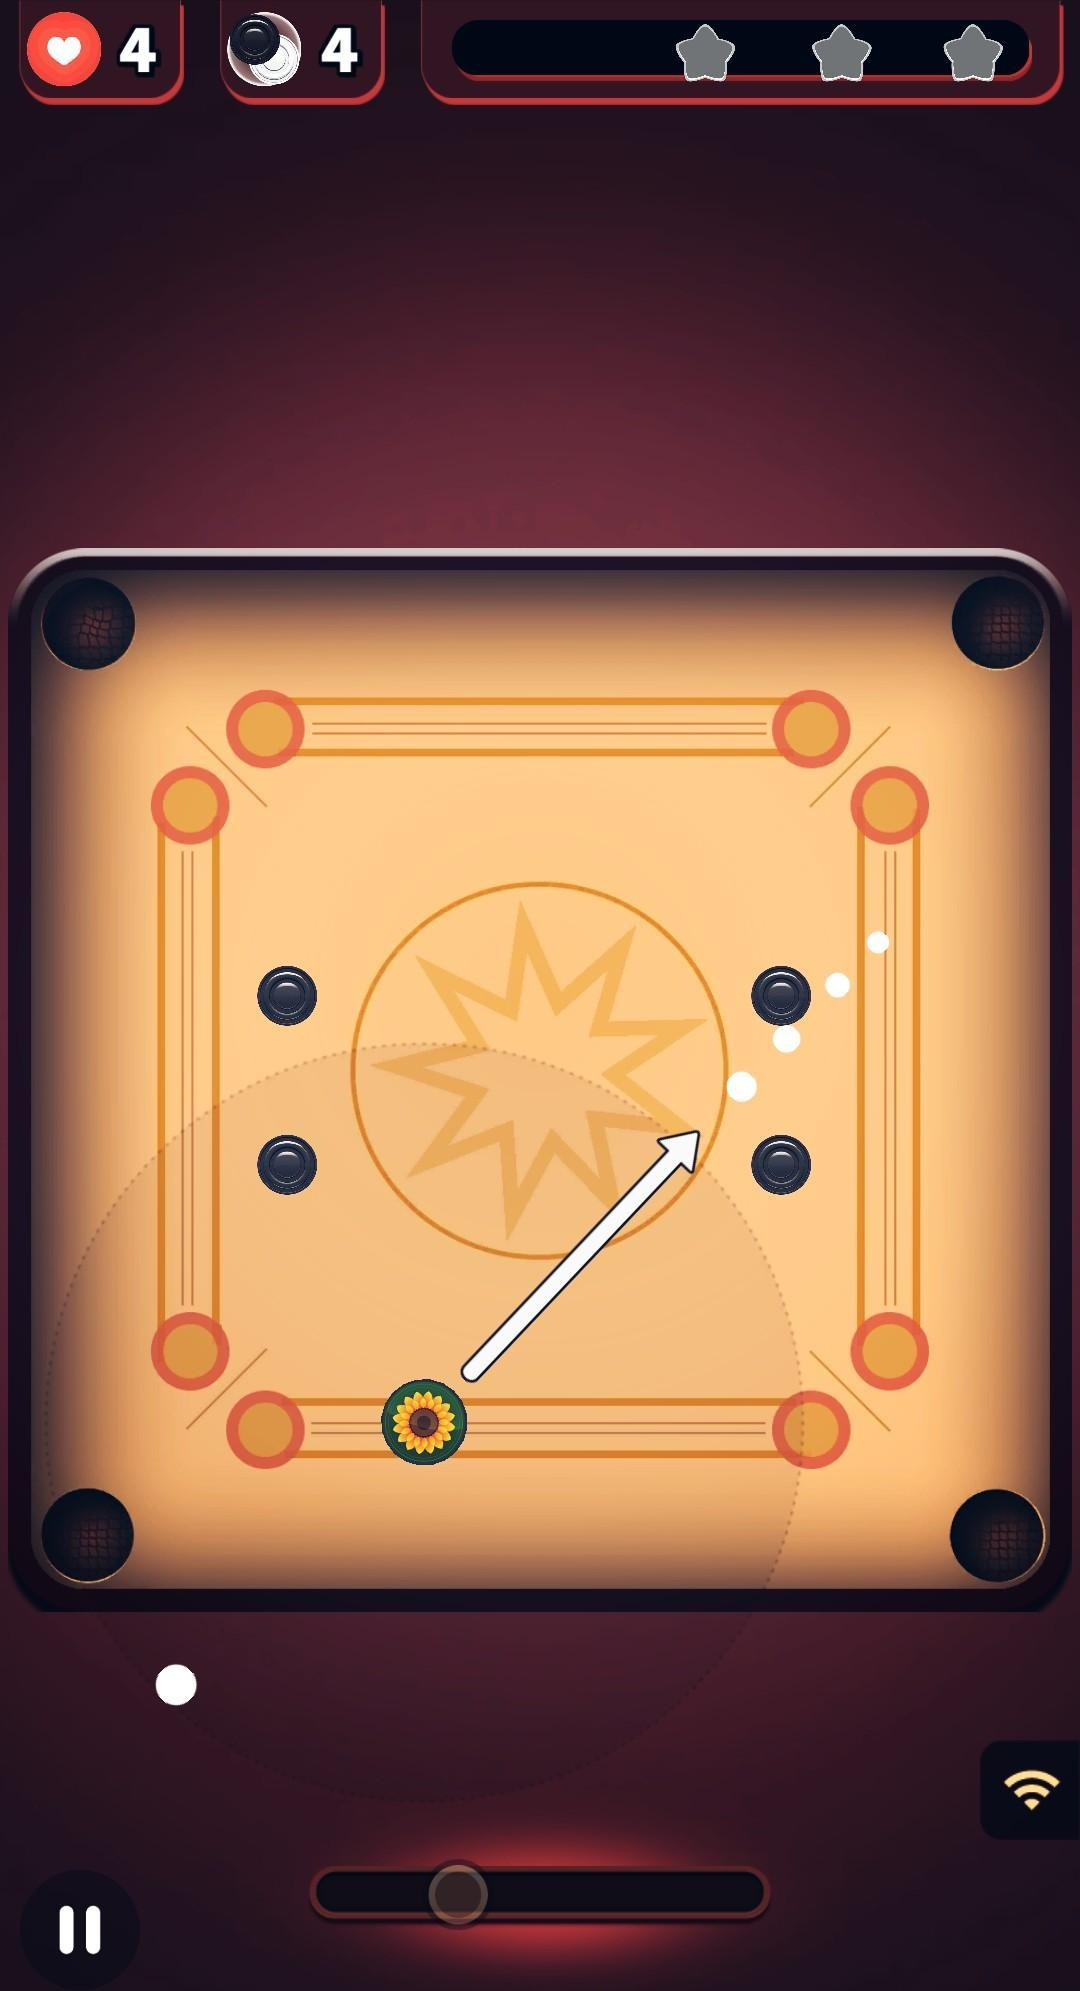 Carrom : Candy Carrom - A Carrom Board Game 4.0.2 Screenshot 4